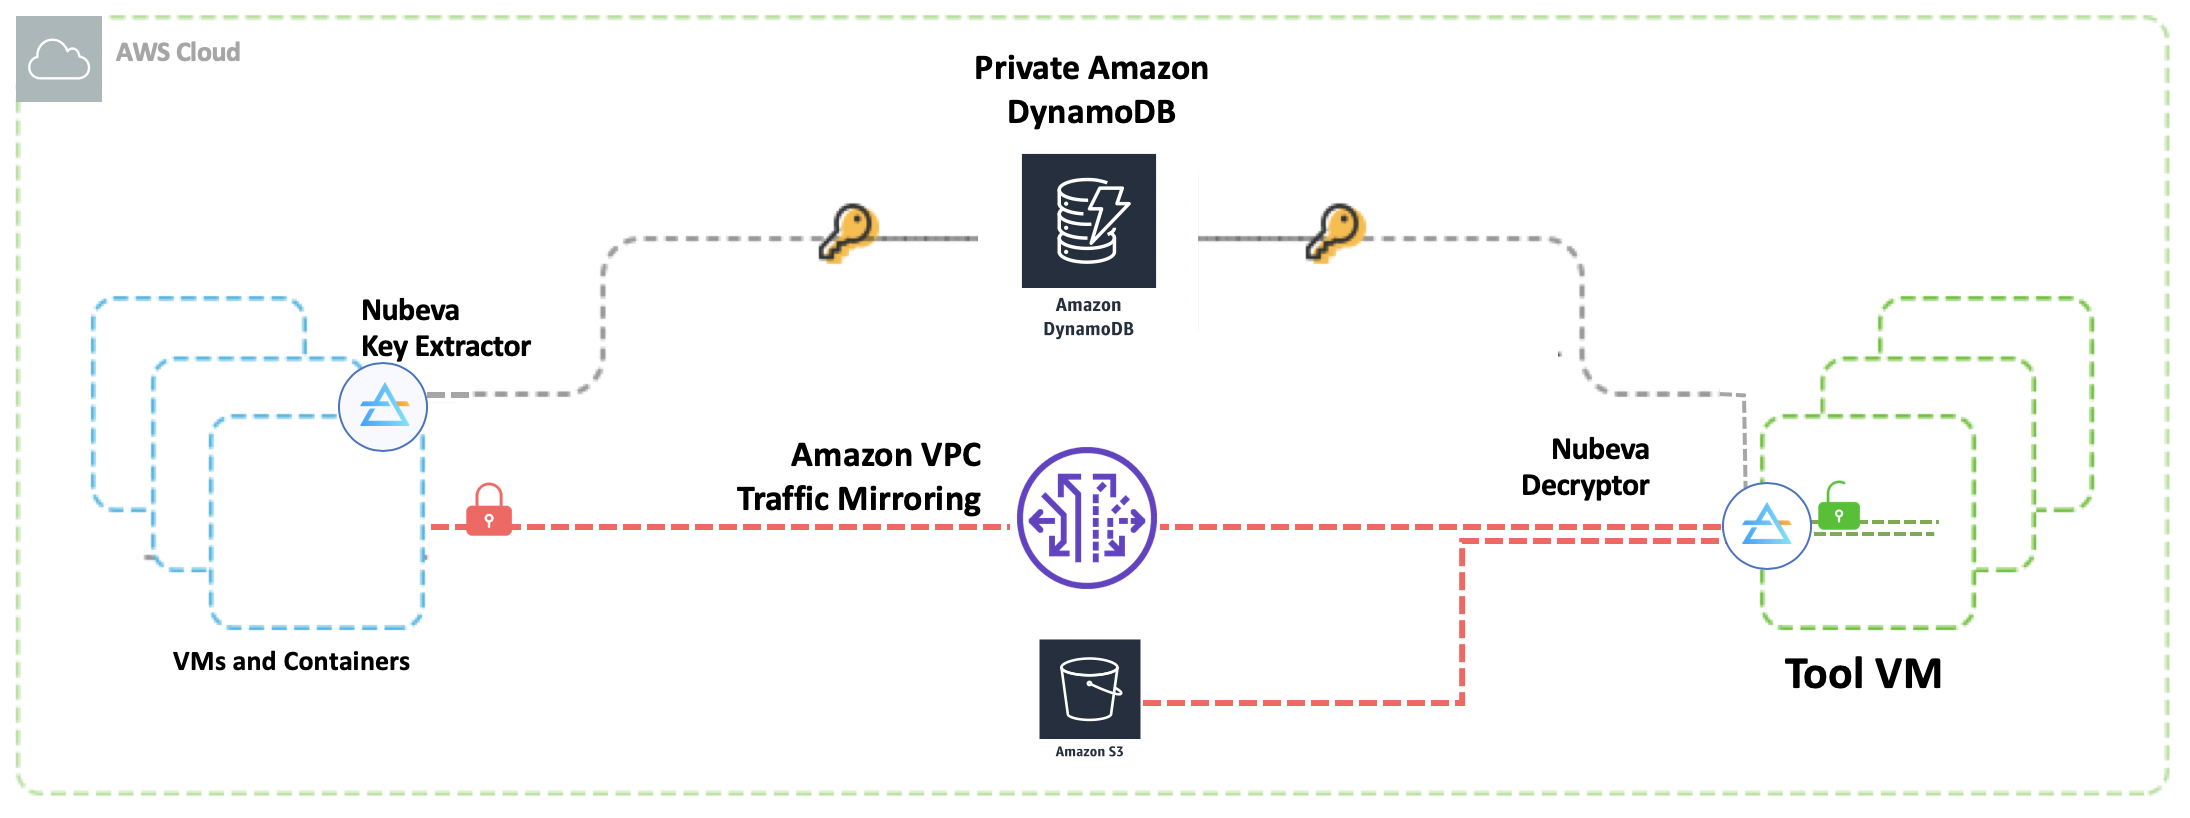 Nubeva TLS Decrypt and Amazon VPC Traffic Mirroring